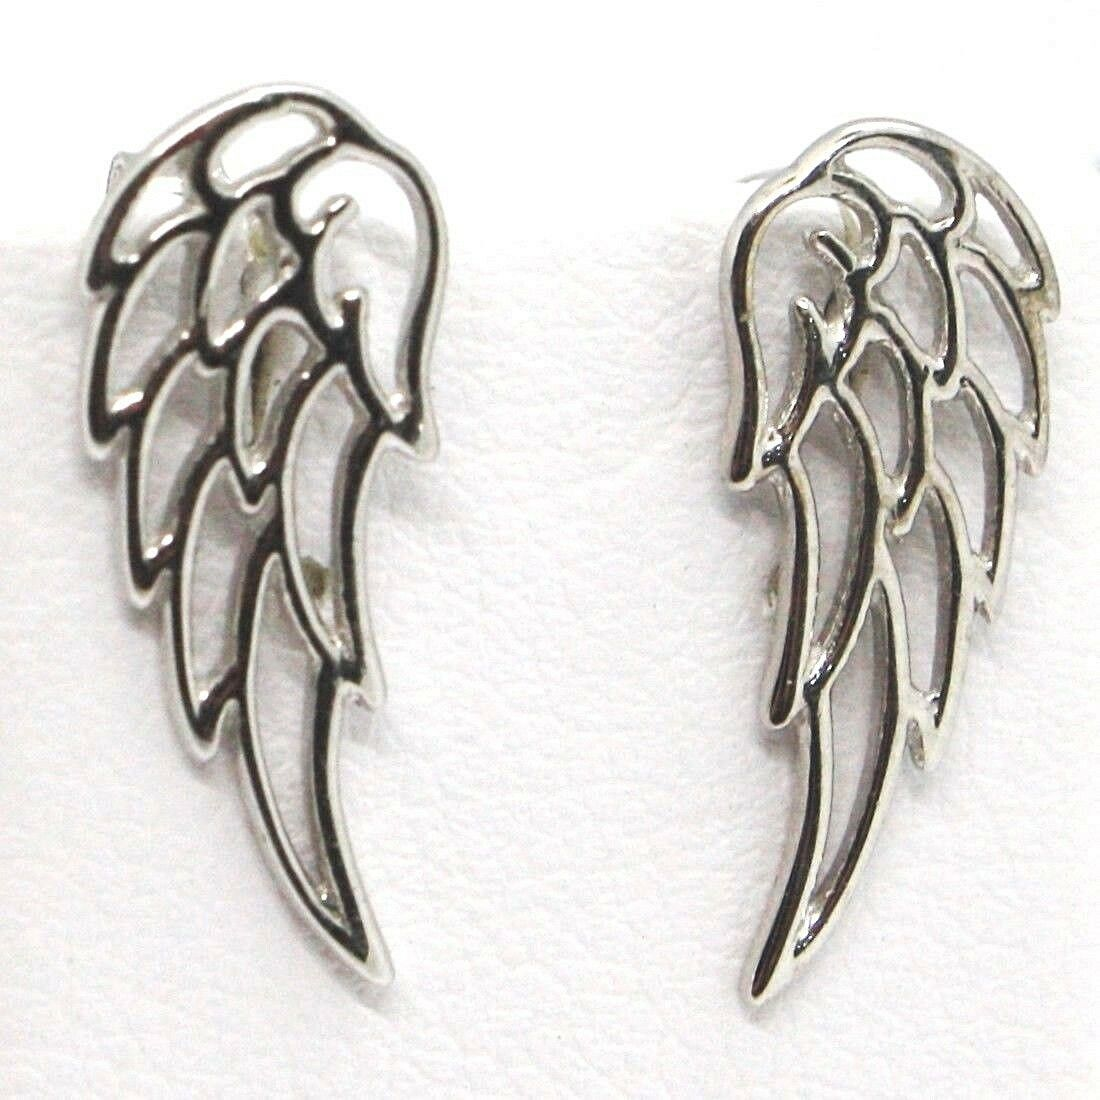 SOLID 18K WHITE GOLD PENDANT EARRINGS STYLIZED ANGEL WING, WINGS, MADE IN ITALY